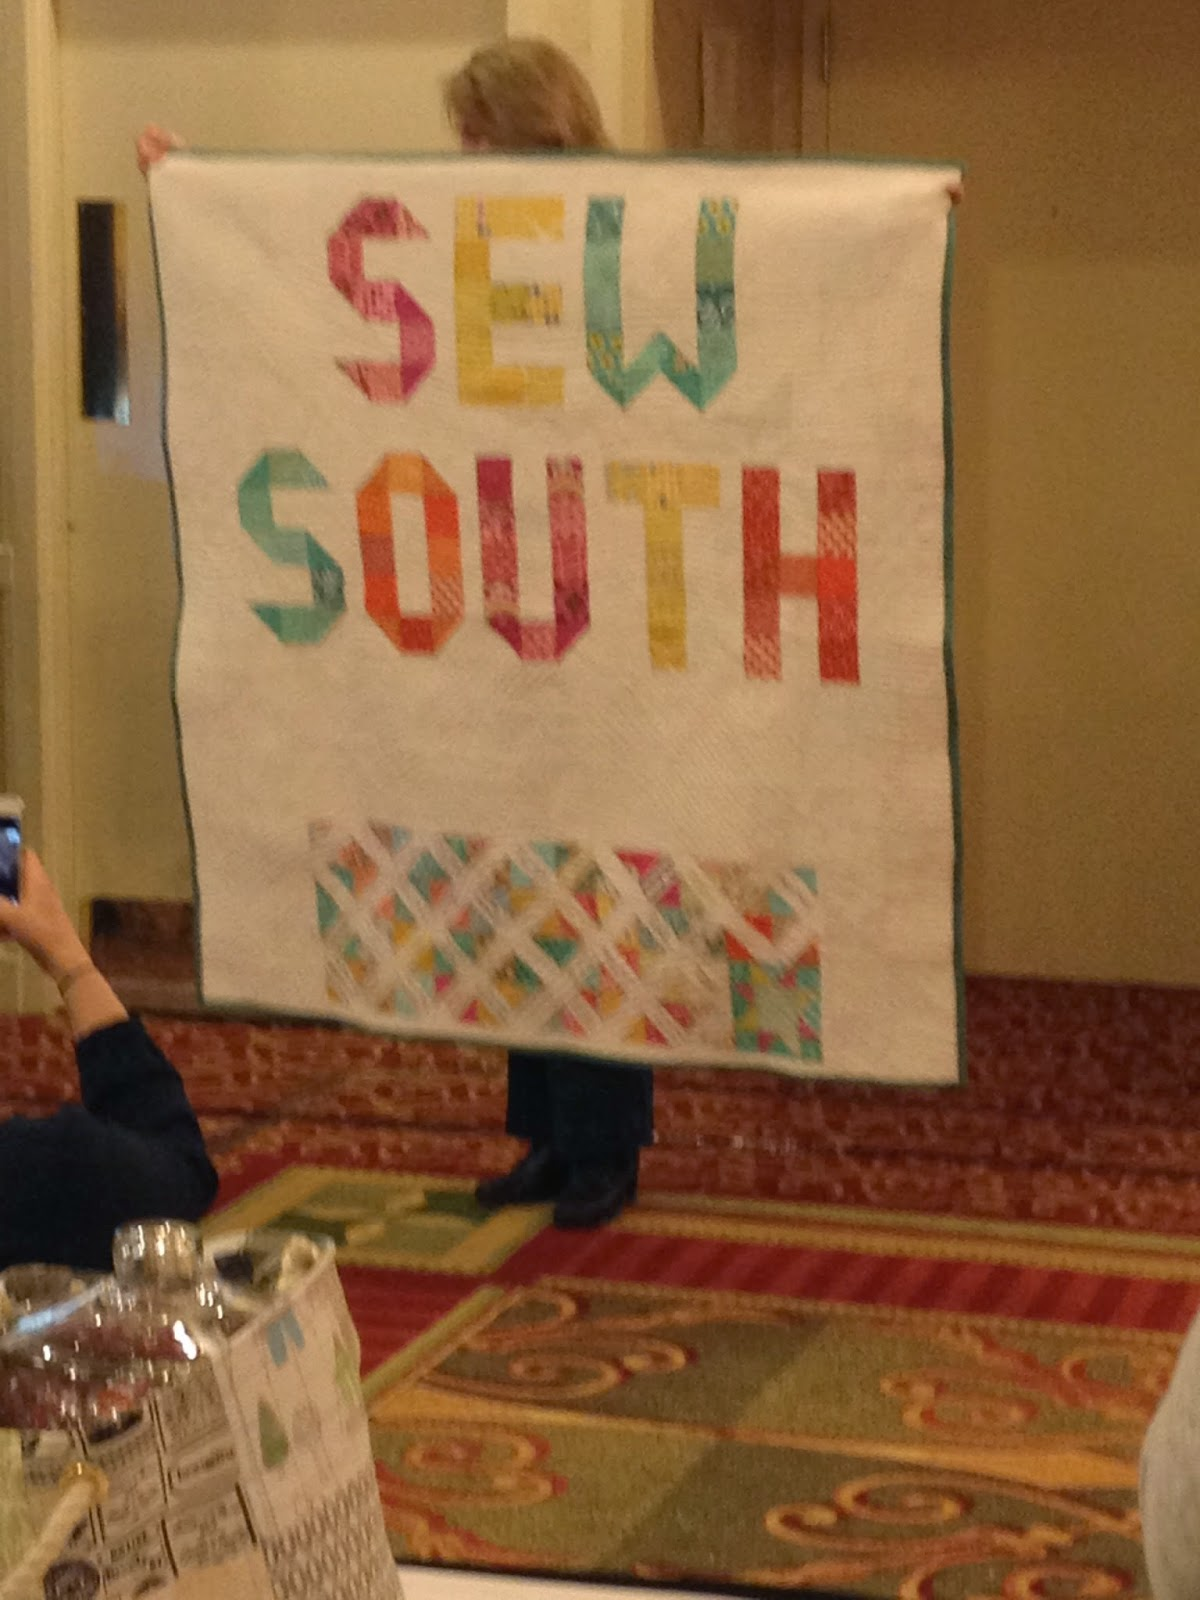 Sew South quilt